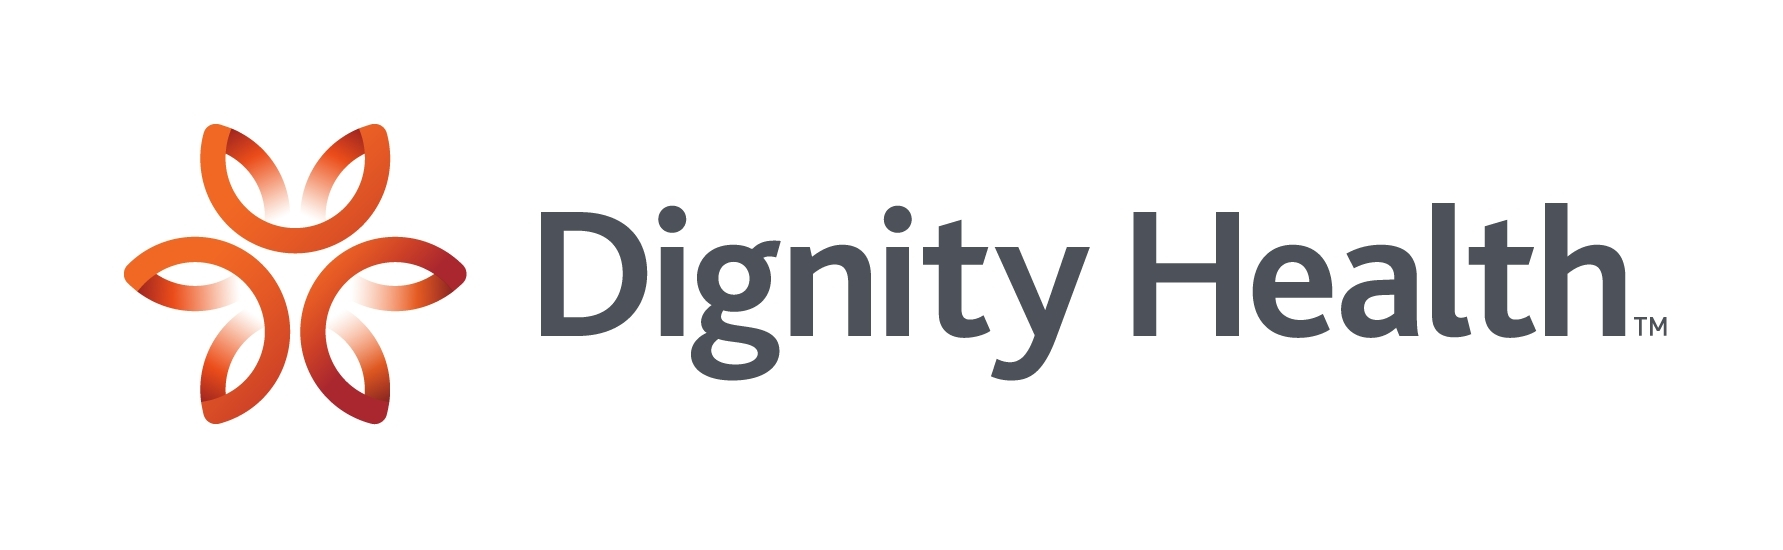 the importance of dignity in the provision of health care The concept dignity has great influence on care provision as nurses deal with patients with health challenges, the dignity of the clients should be the utmost concern moreover, nurses can ensure necessary steps to nurture, preserve and protect client's values and respect.